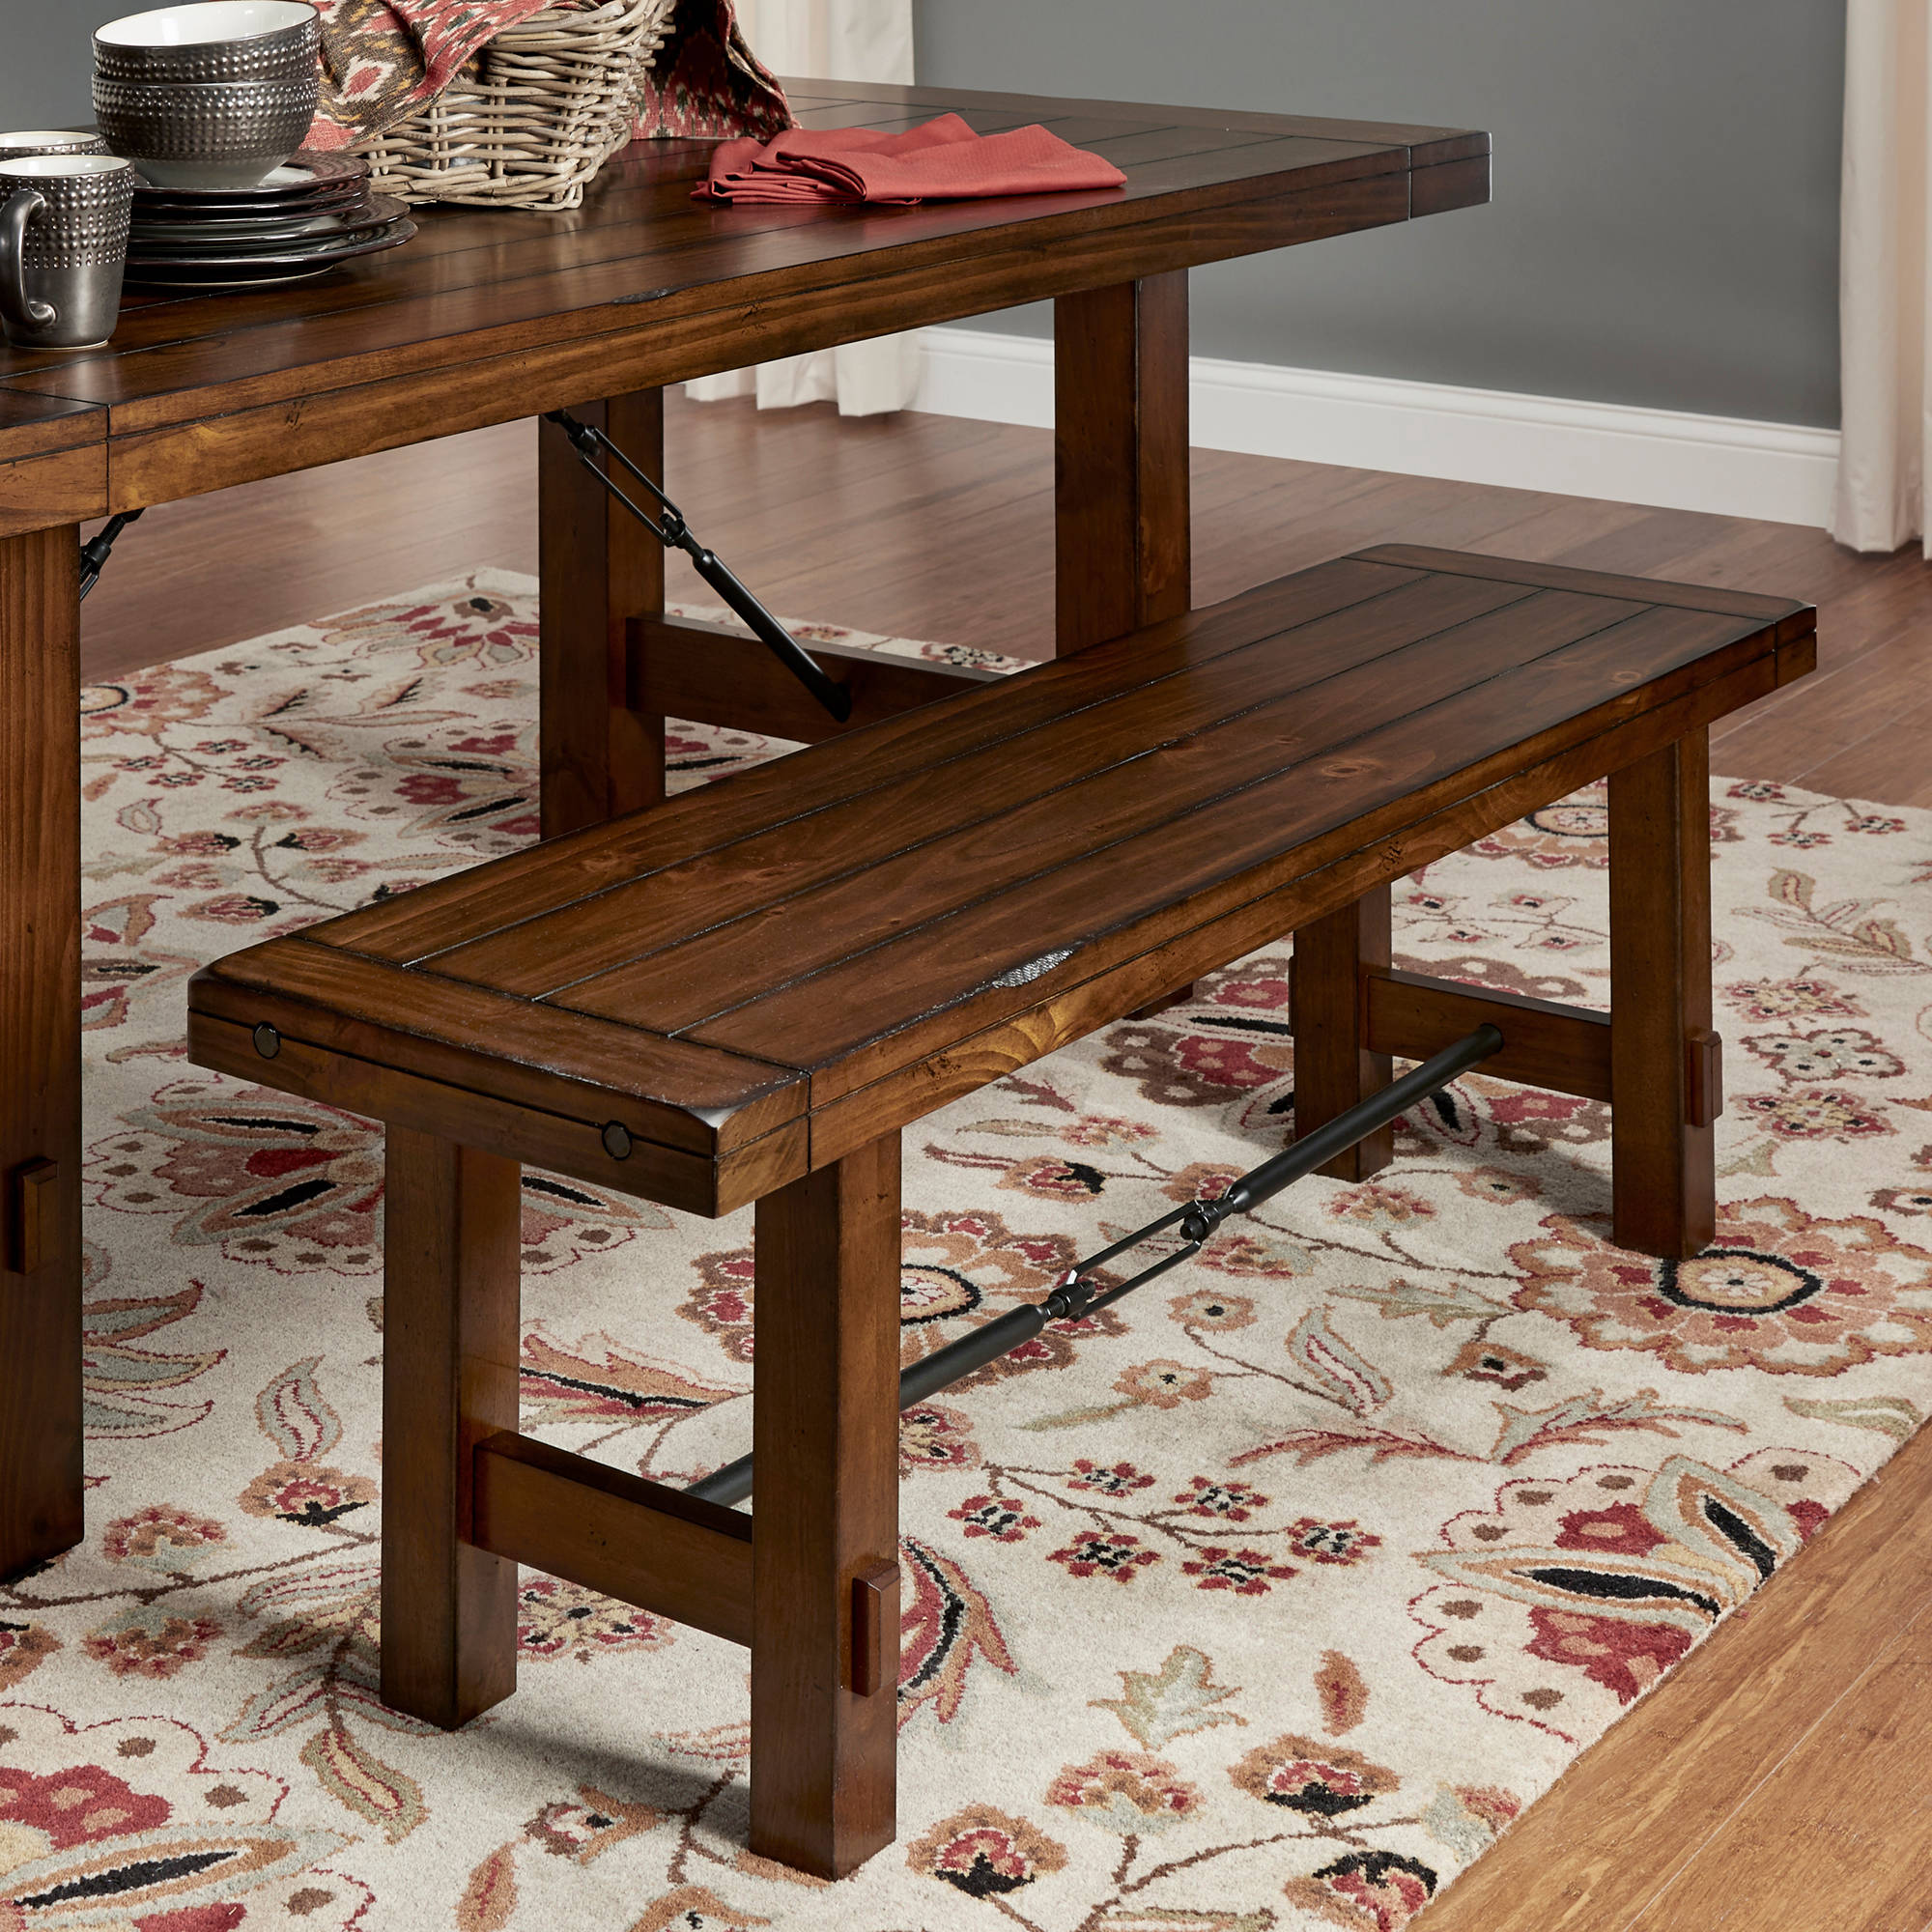 Weston Home Clayton Metal Stretcher Dining Bench, Rustic Oak